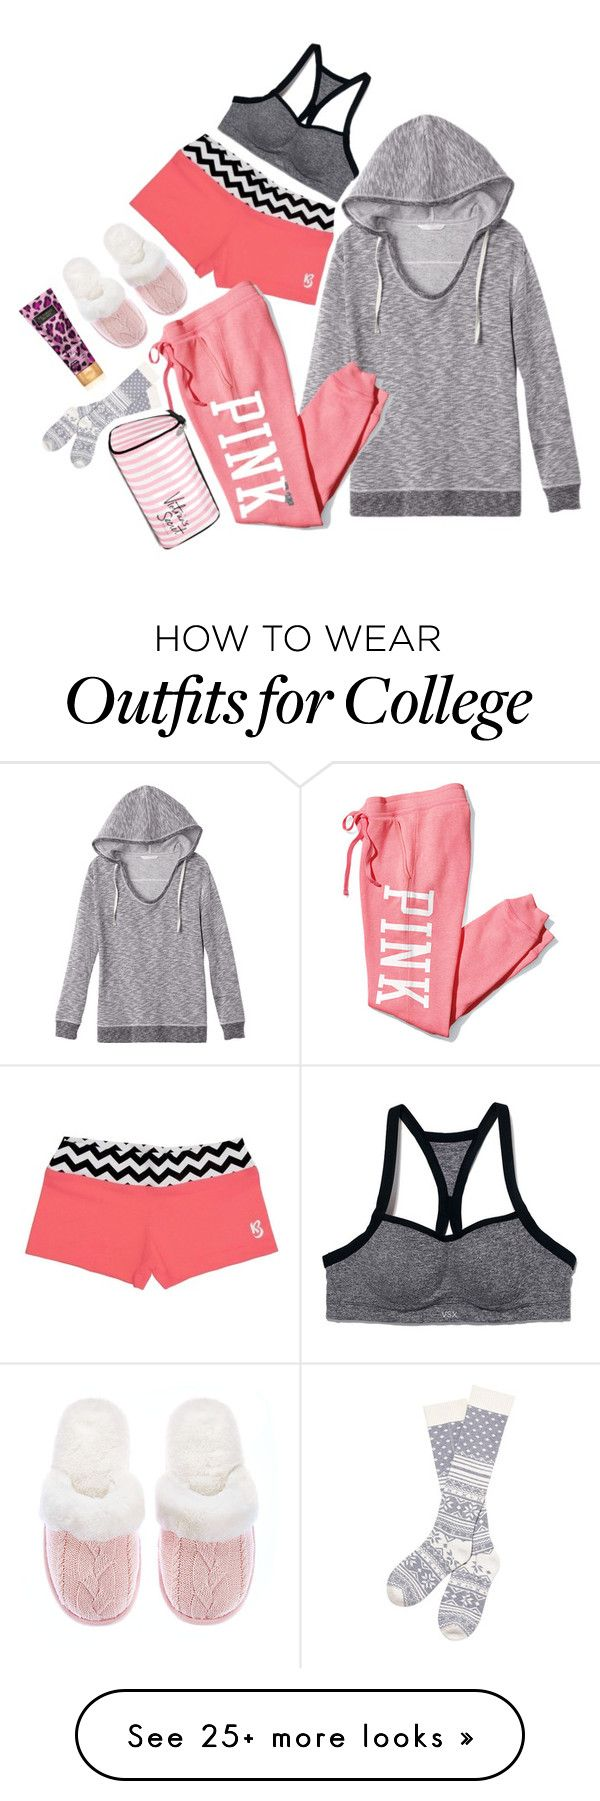 pink by adele-adik on Polyvore featuring Victorias Secret and Victorias Secret PINK